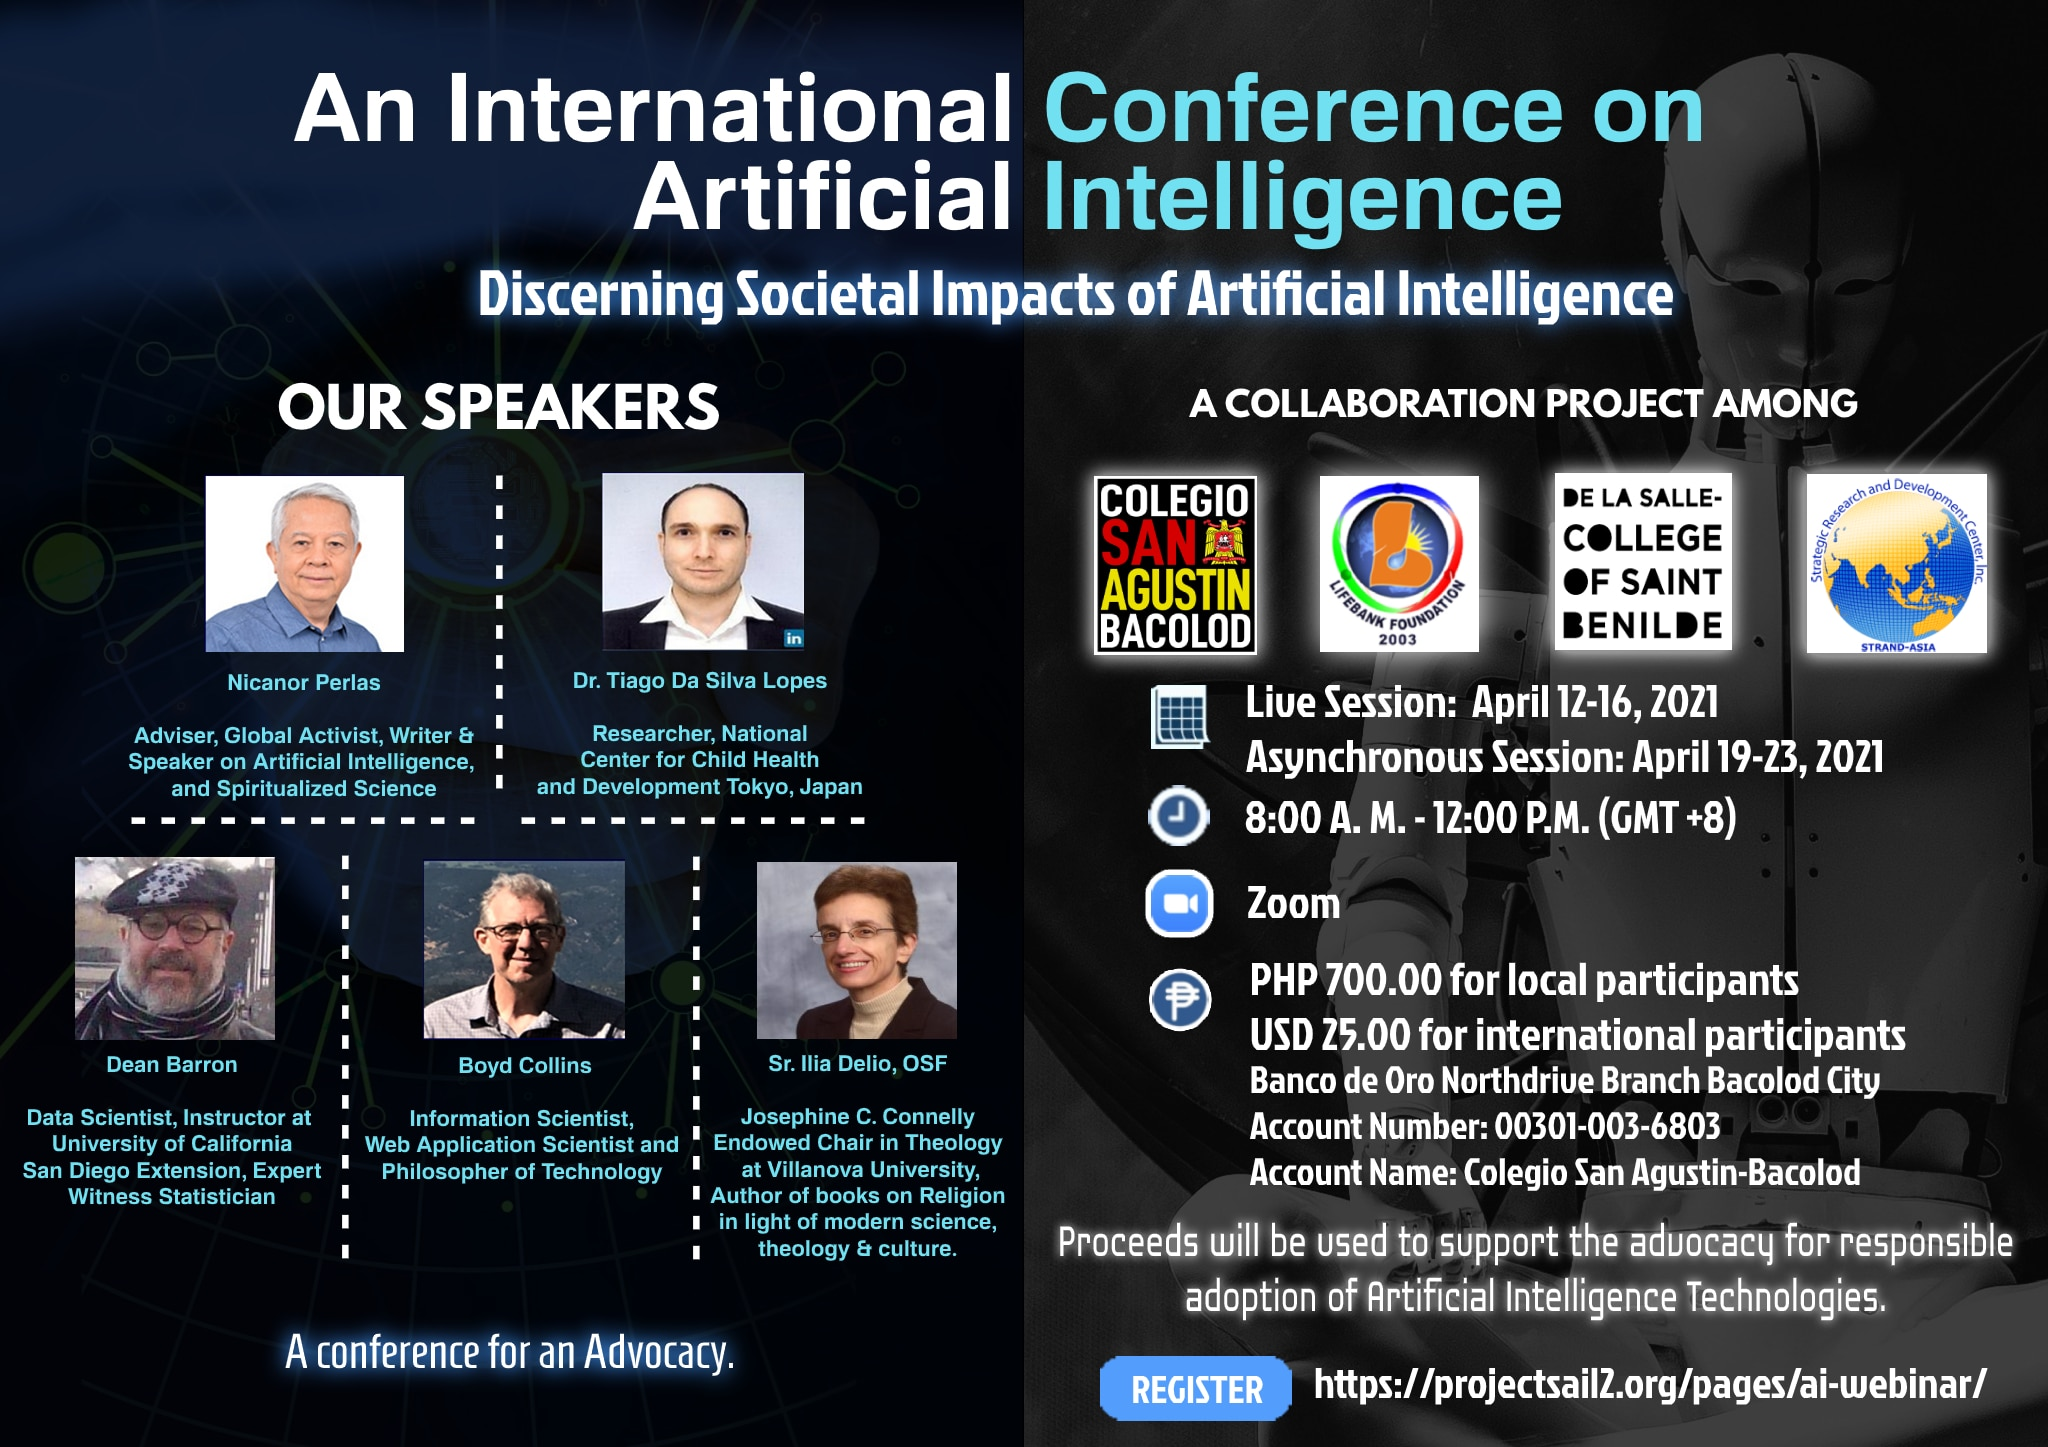 Event poster for the International Conference on Artificial Intelligence. | Photo by Paolo Hilado.